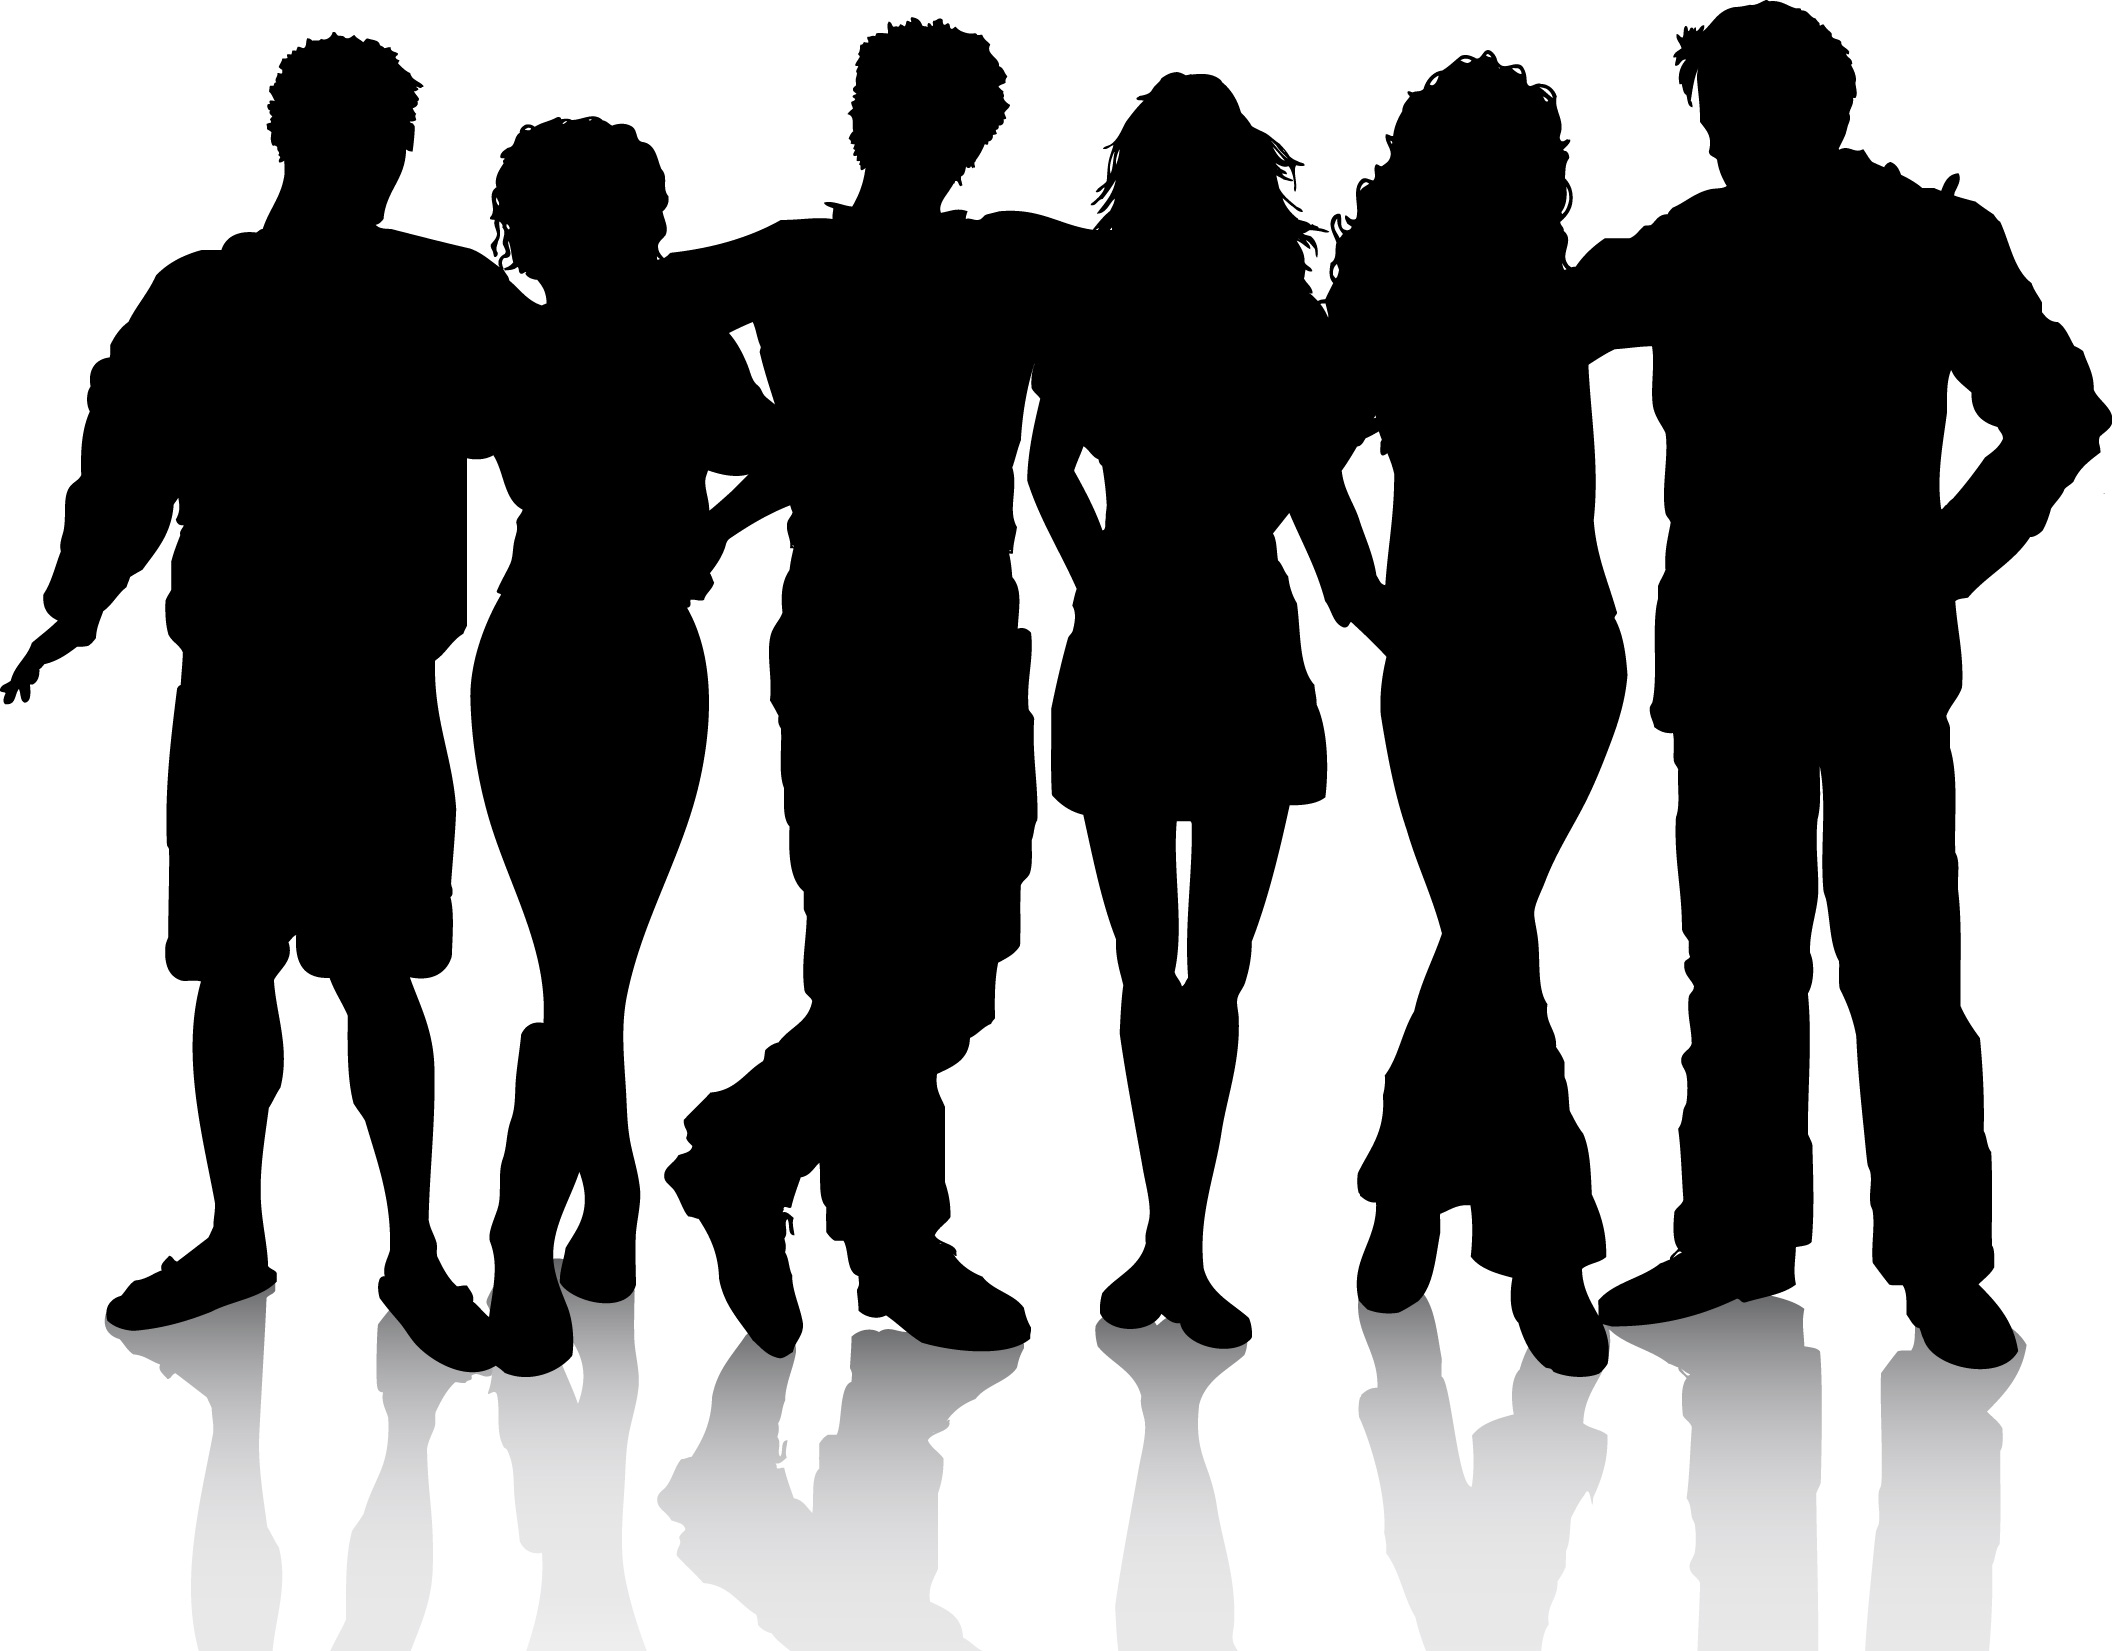 People clip art silhouette .-People clip art silhouette .-8